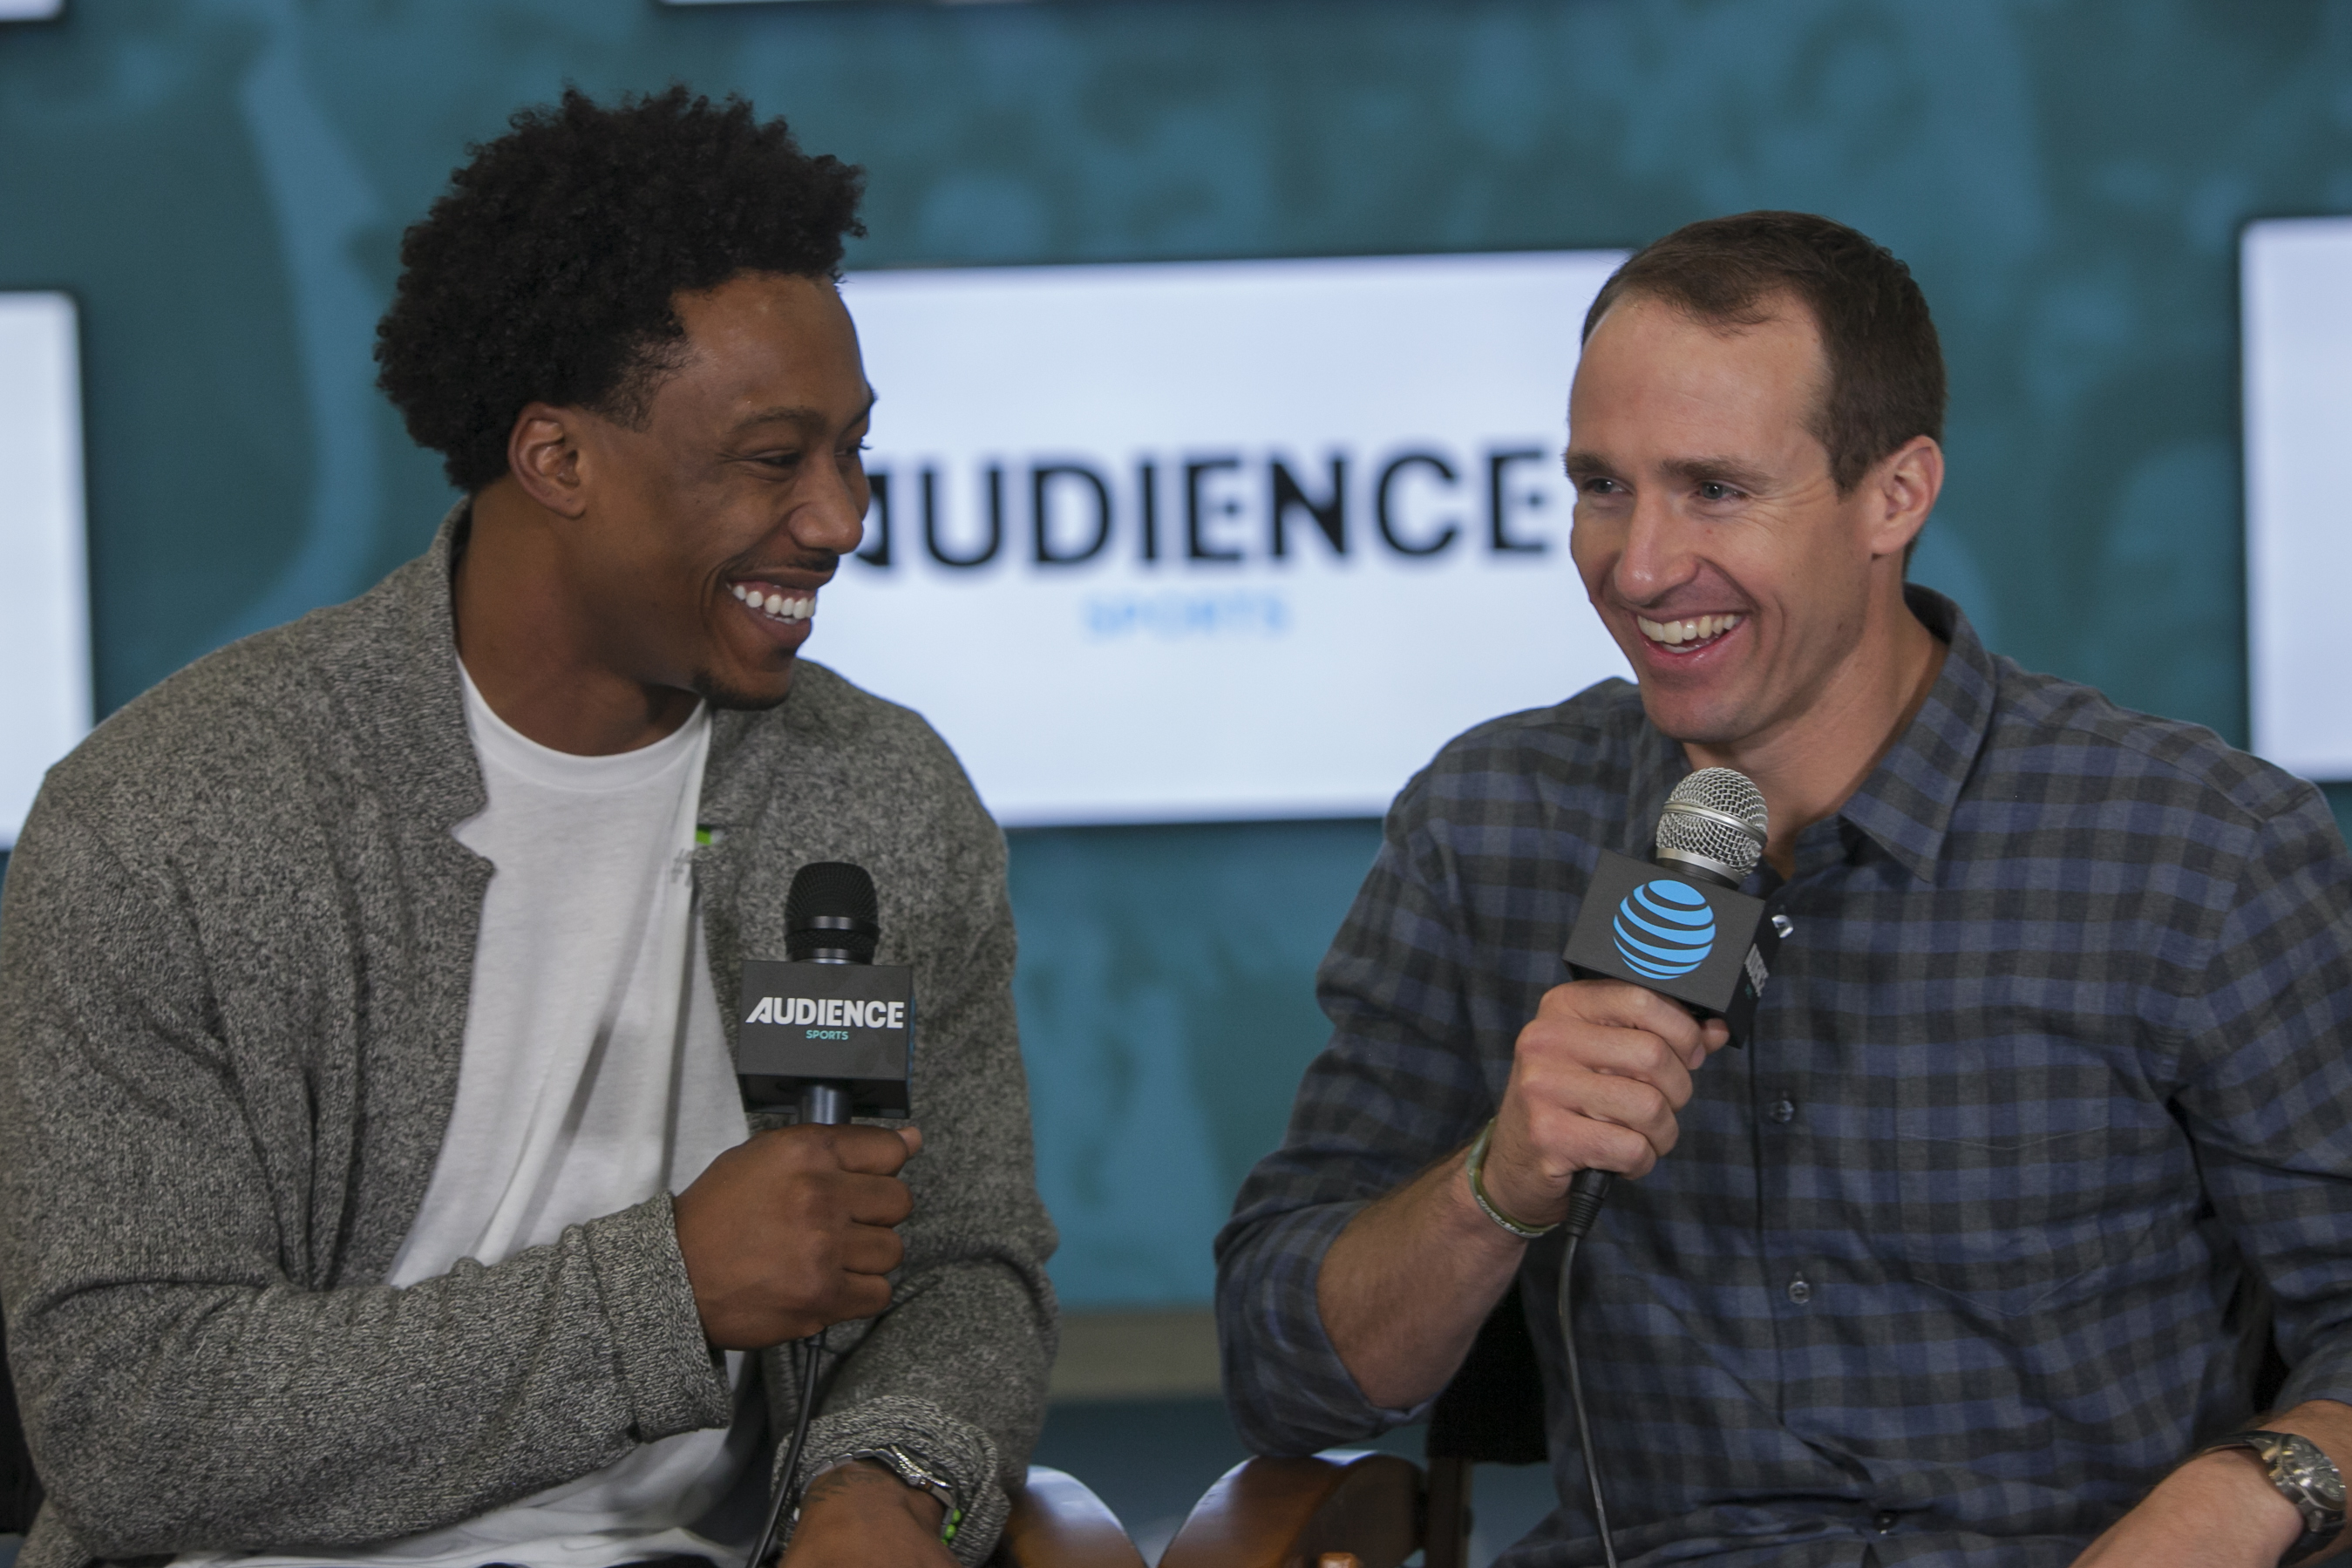 Brandon Marshall quizzes Drew Brees